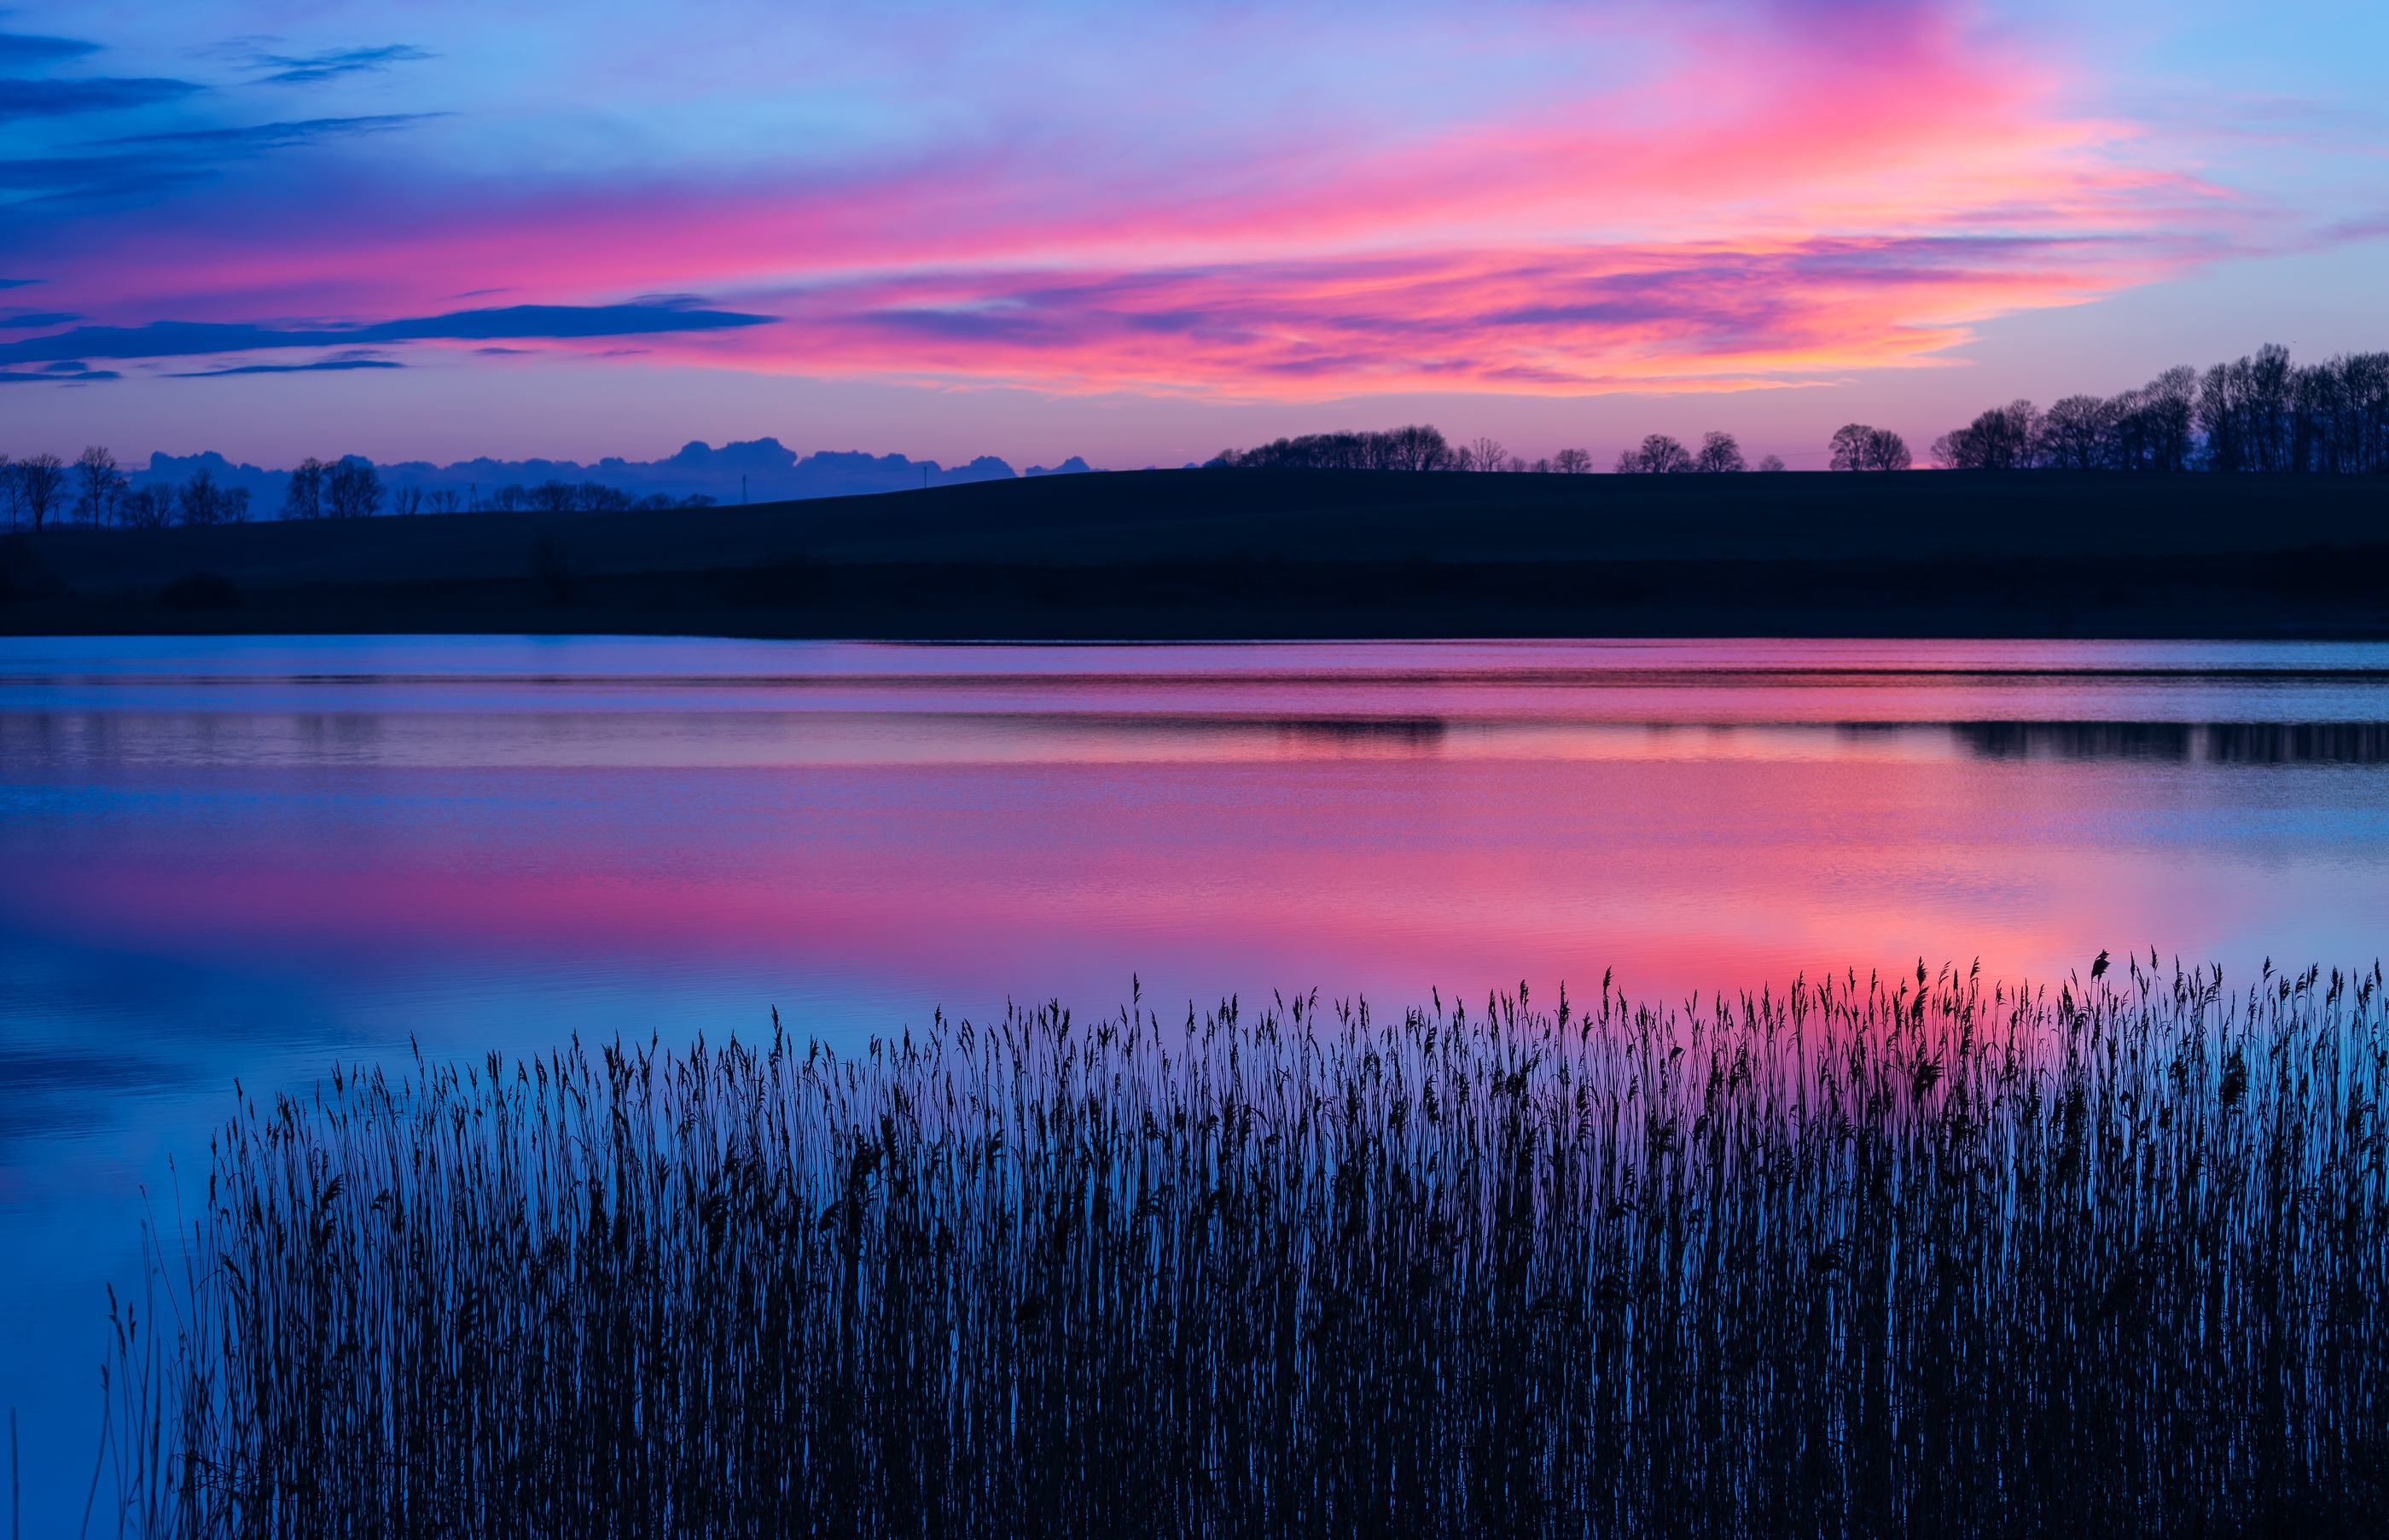 Beautiful sunset over calm lake. Colourful and vibrant landscape of lake shore with reeds.